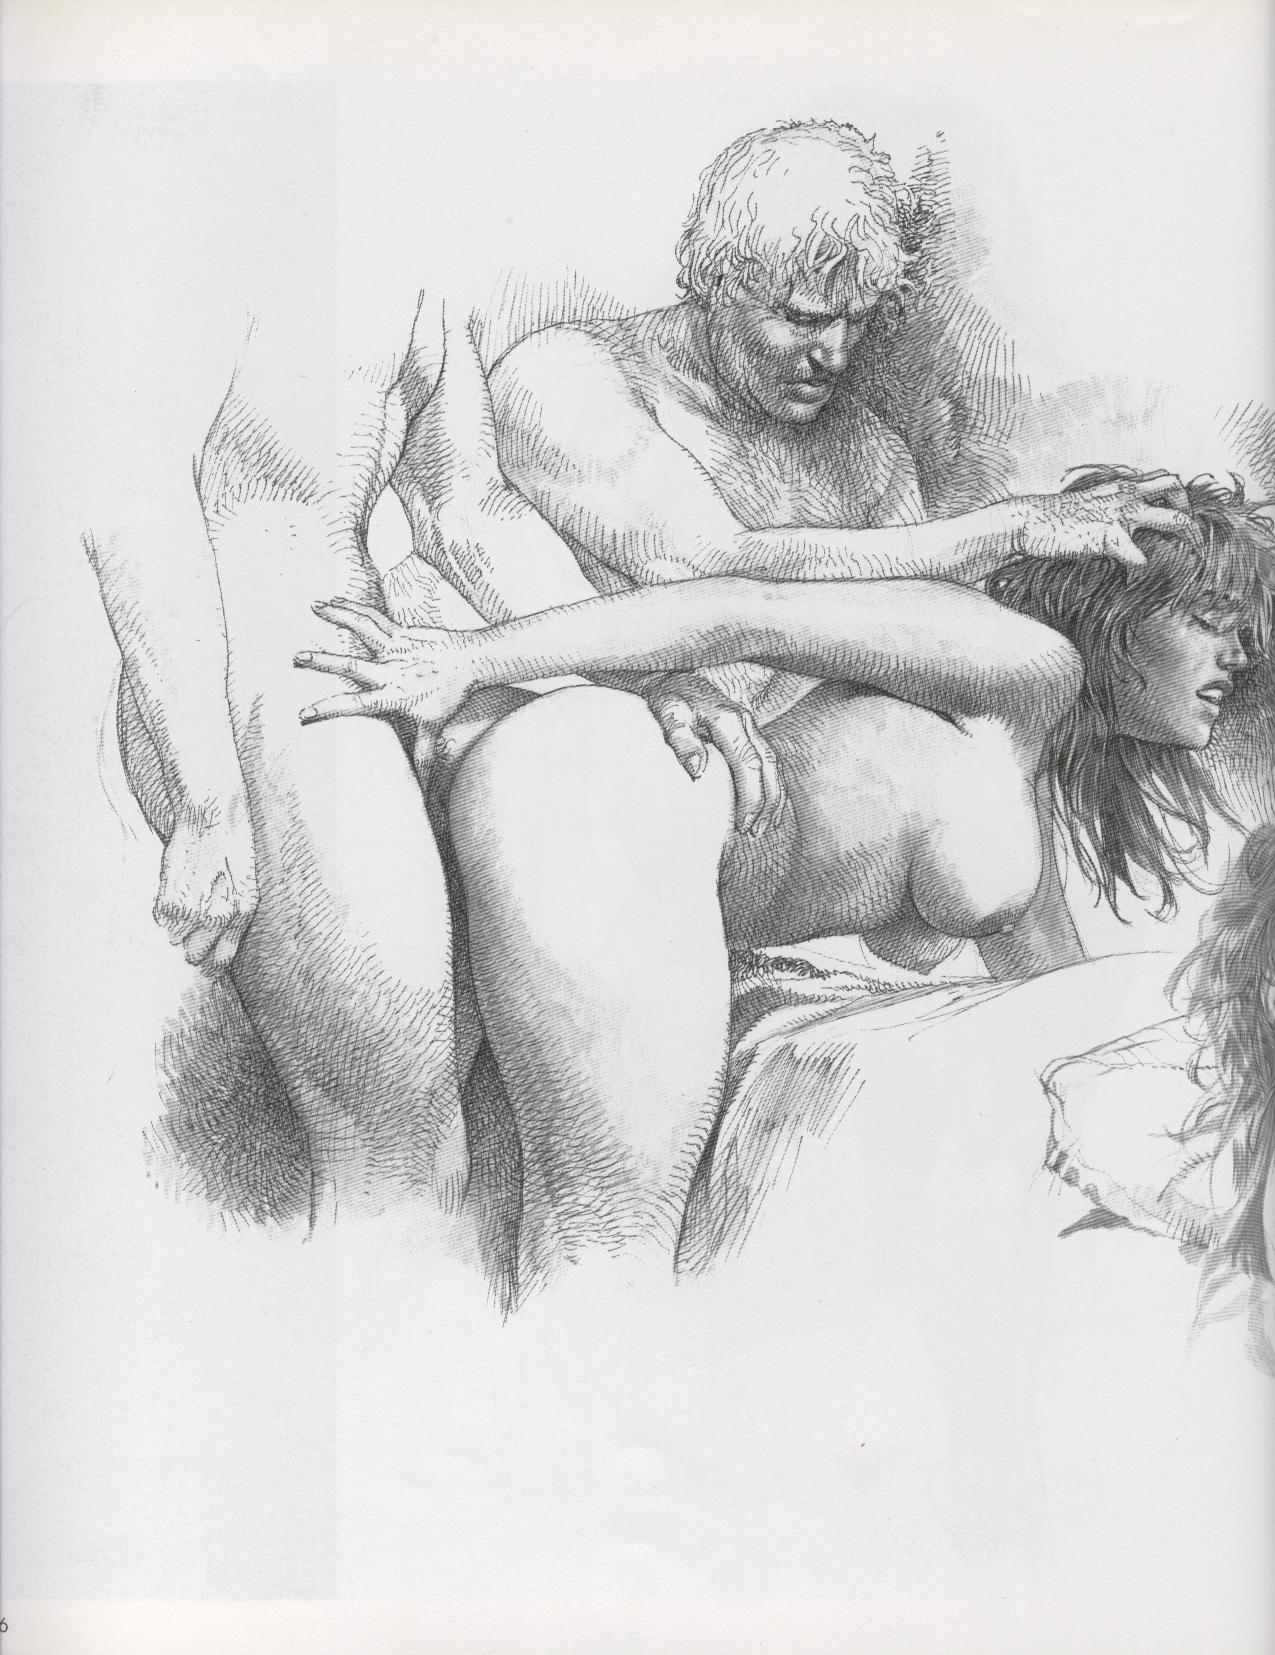 Black and white fantasy sex drawings erotic picture